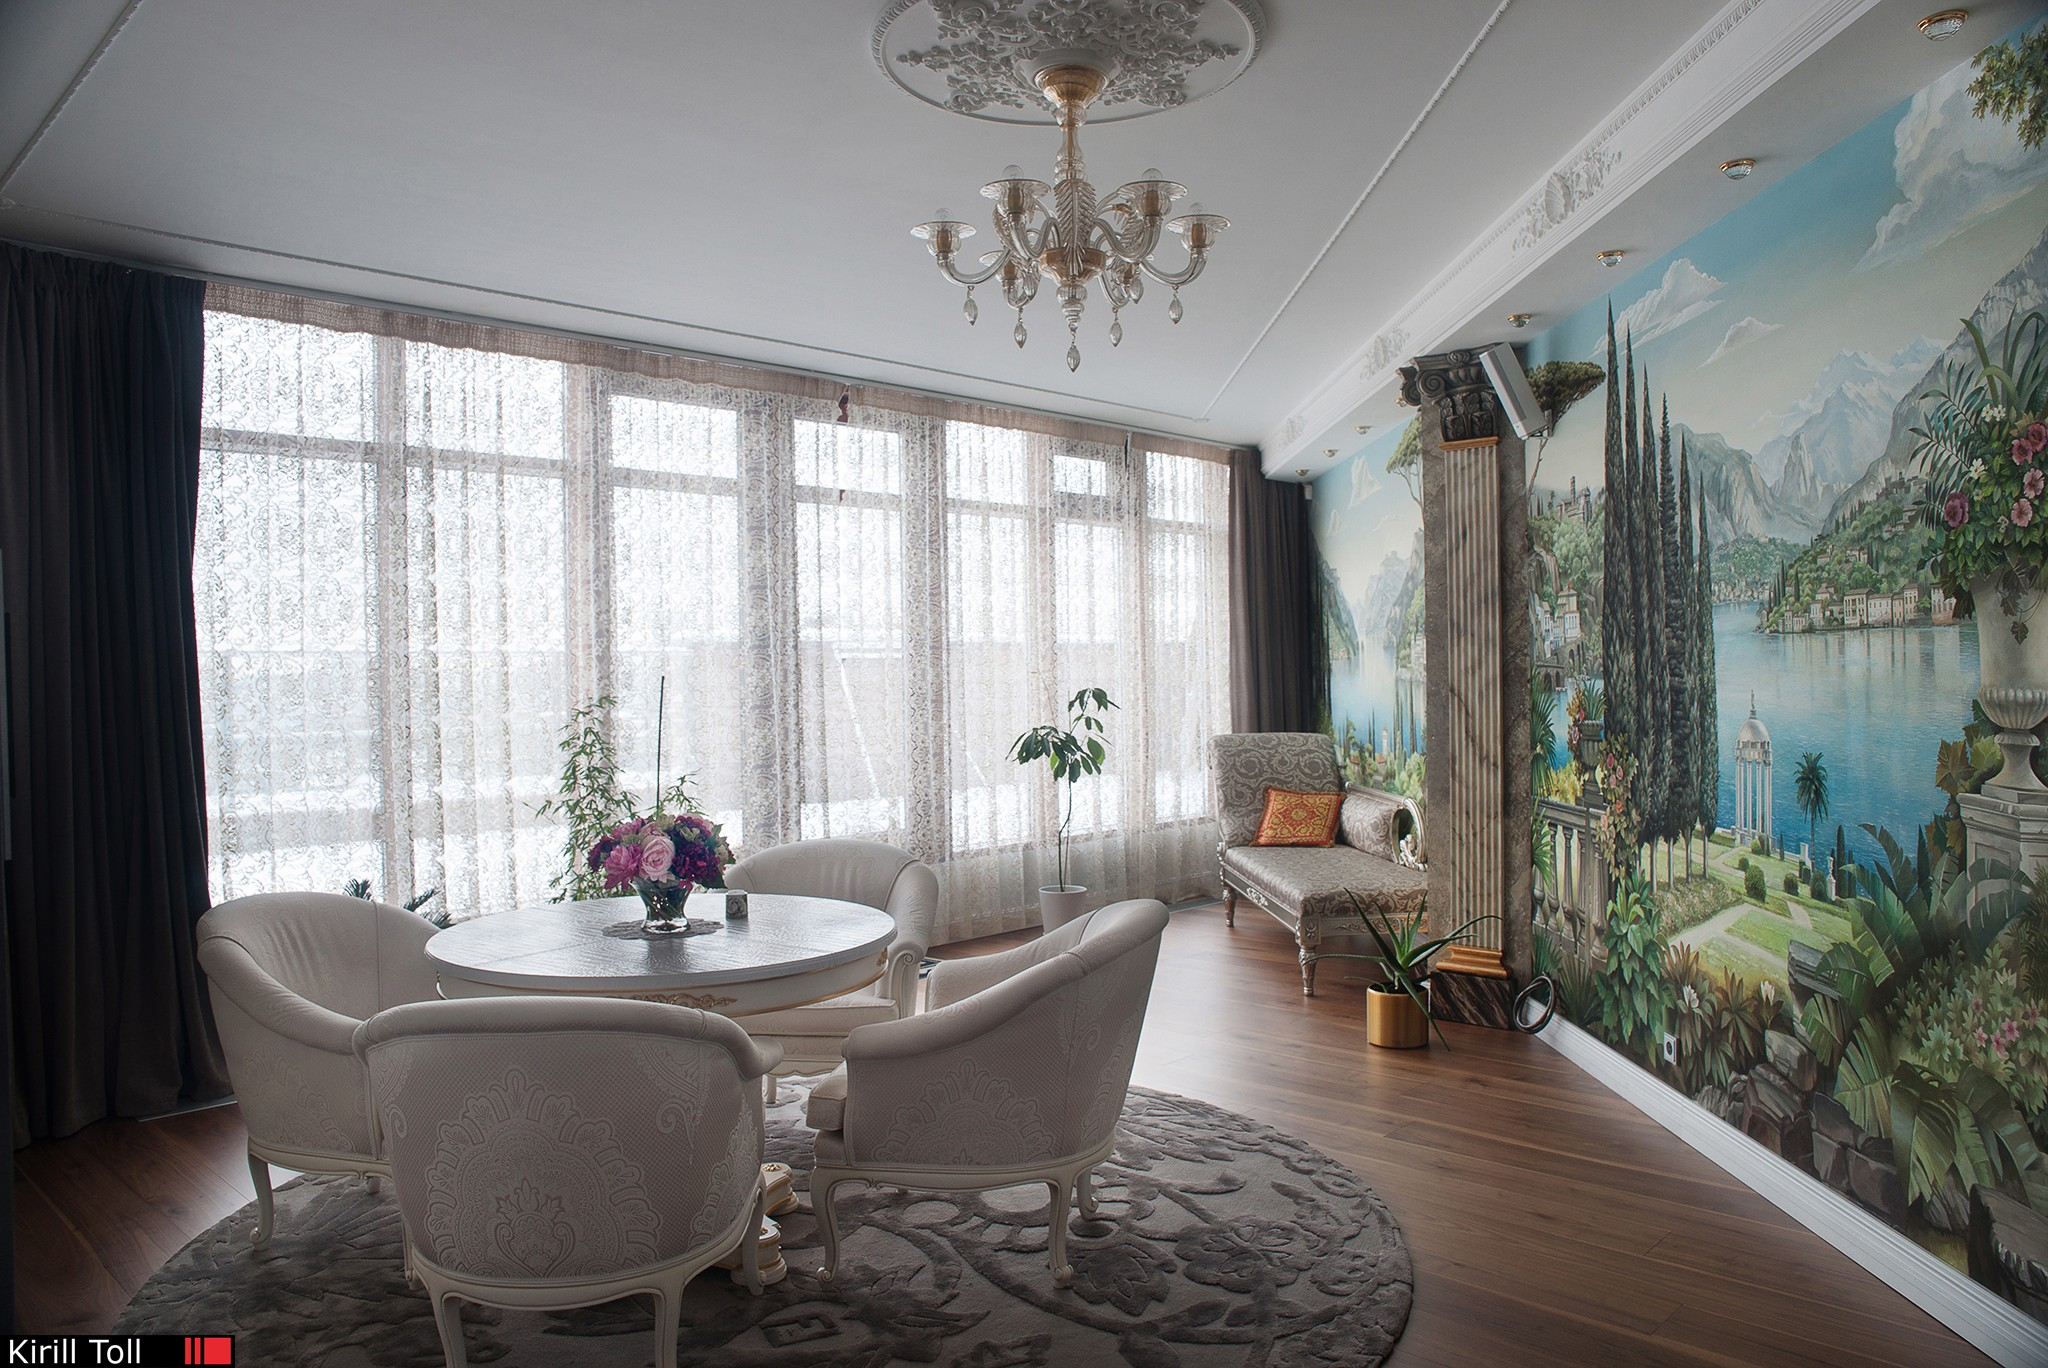 Apartment with wall paintings. Part of interior photography.